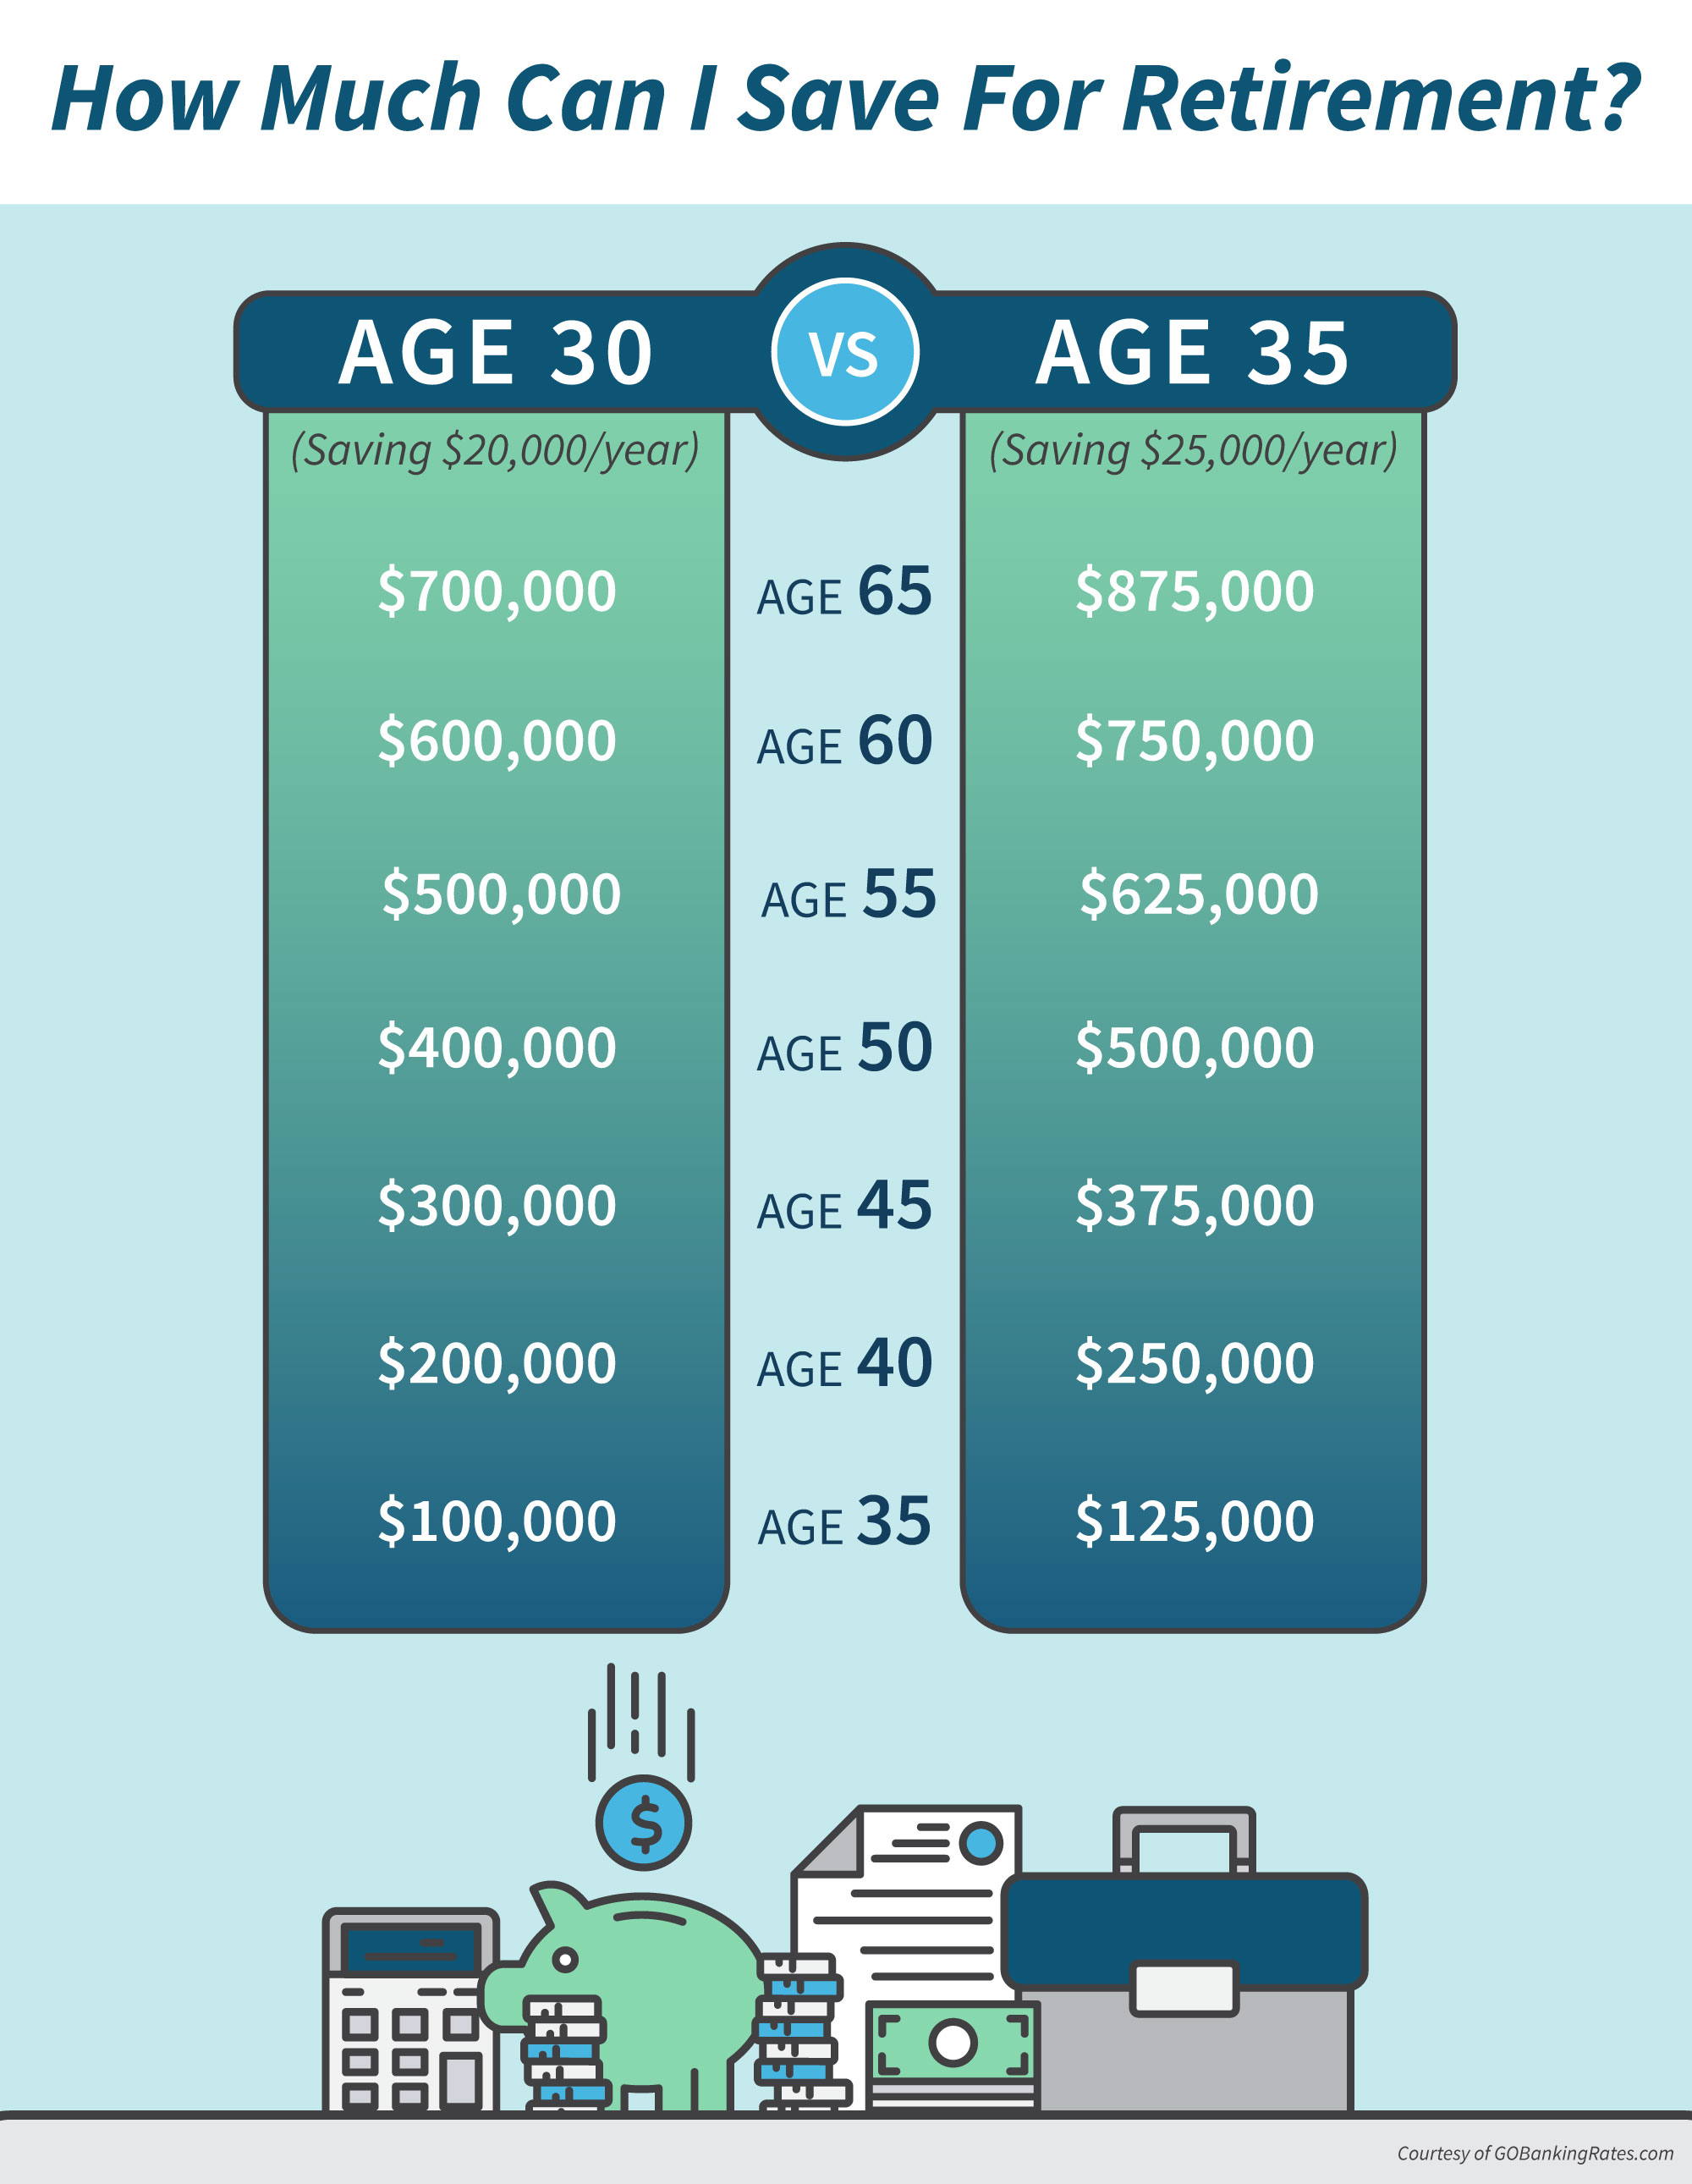 How Much Can I Save For Retirement infographic